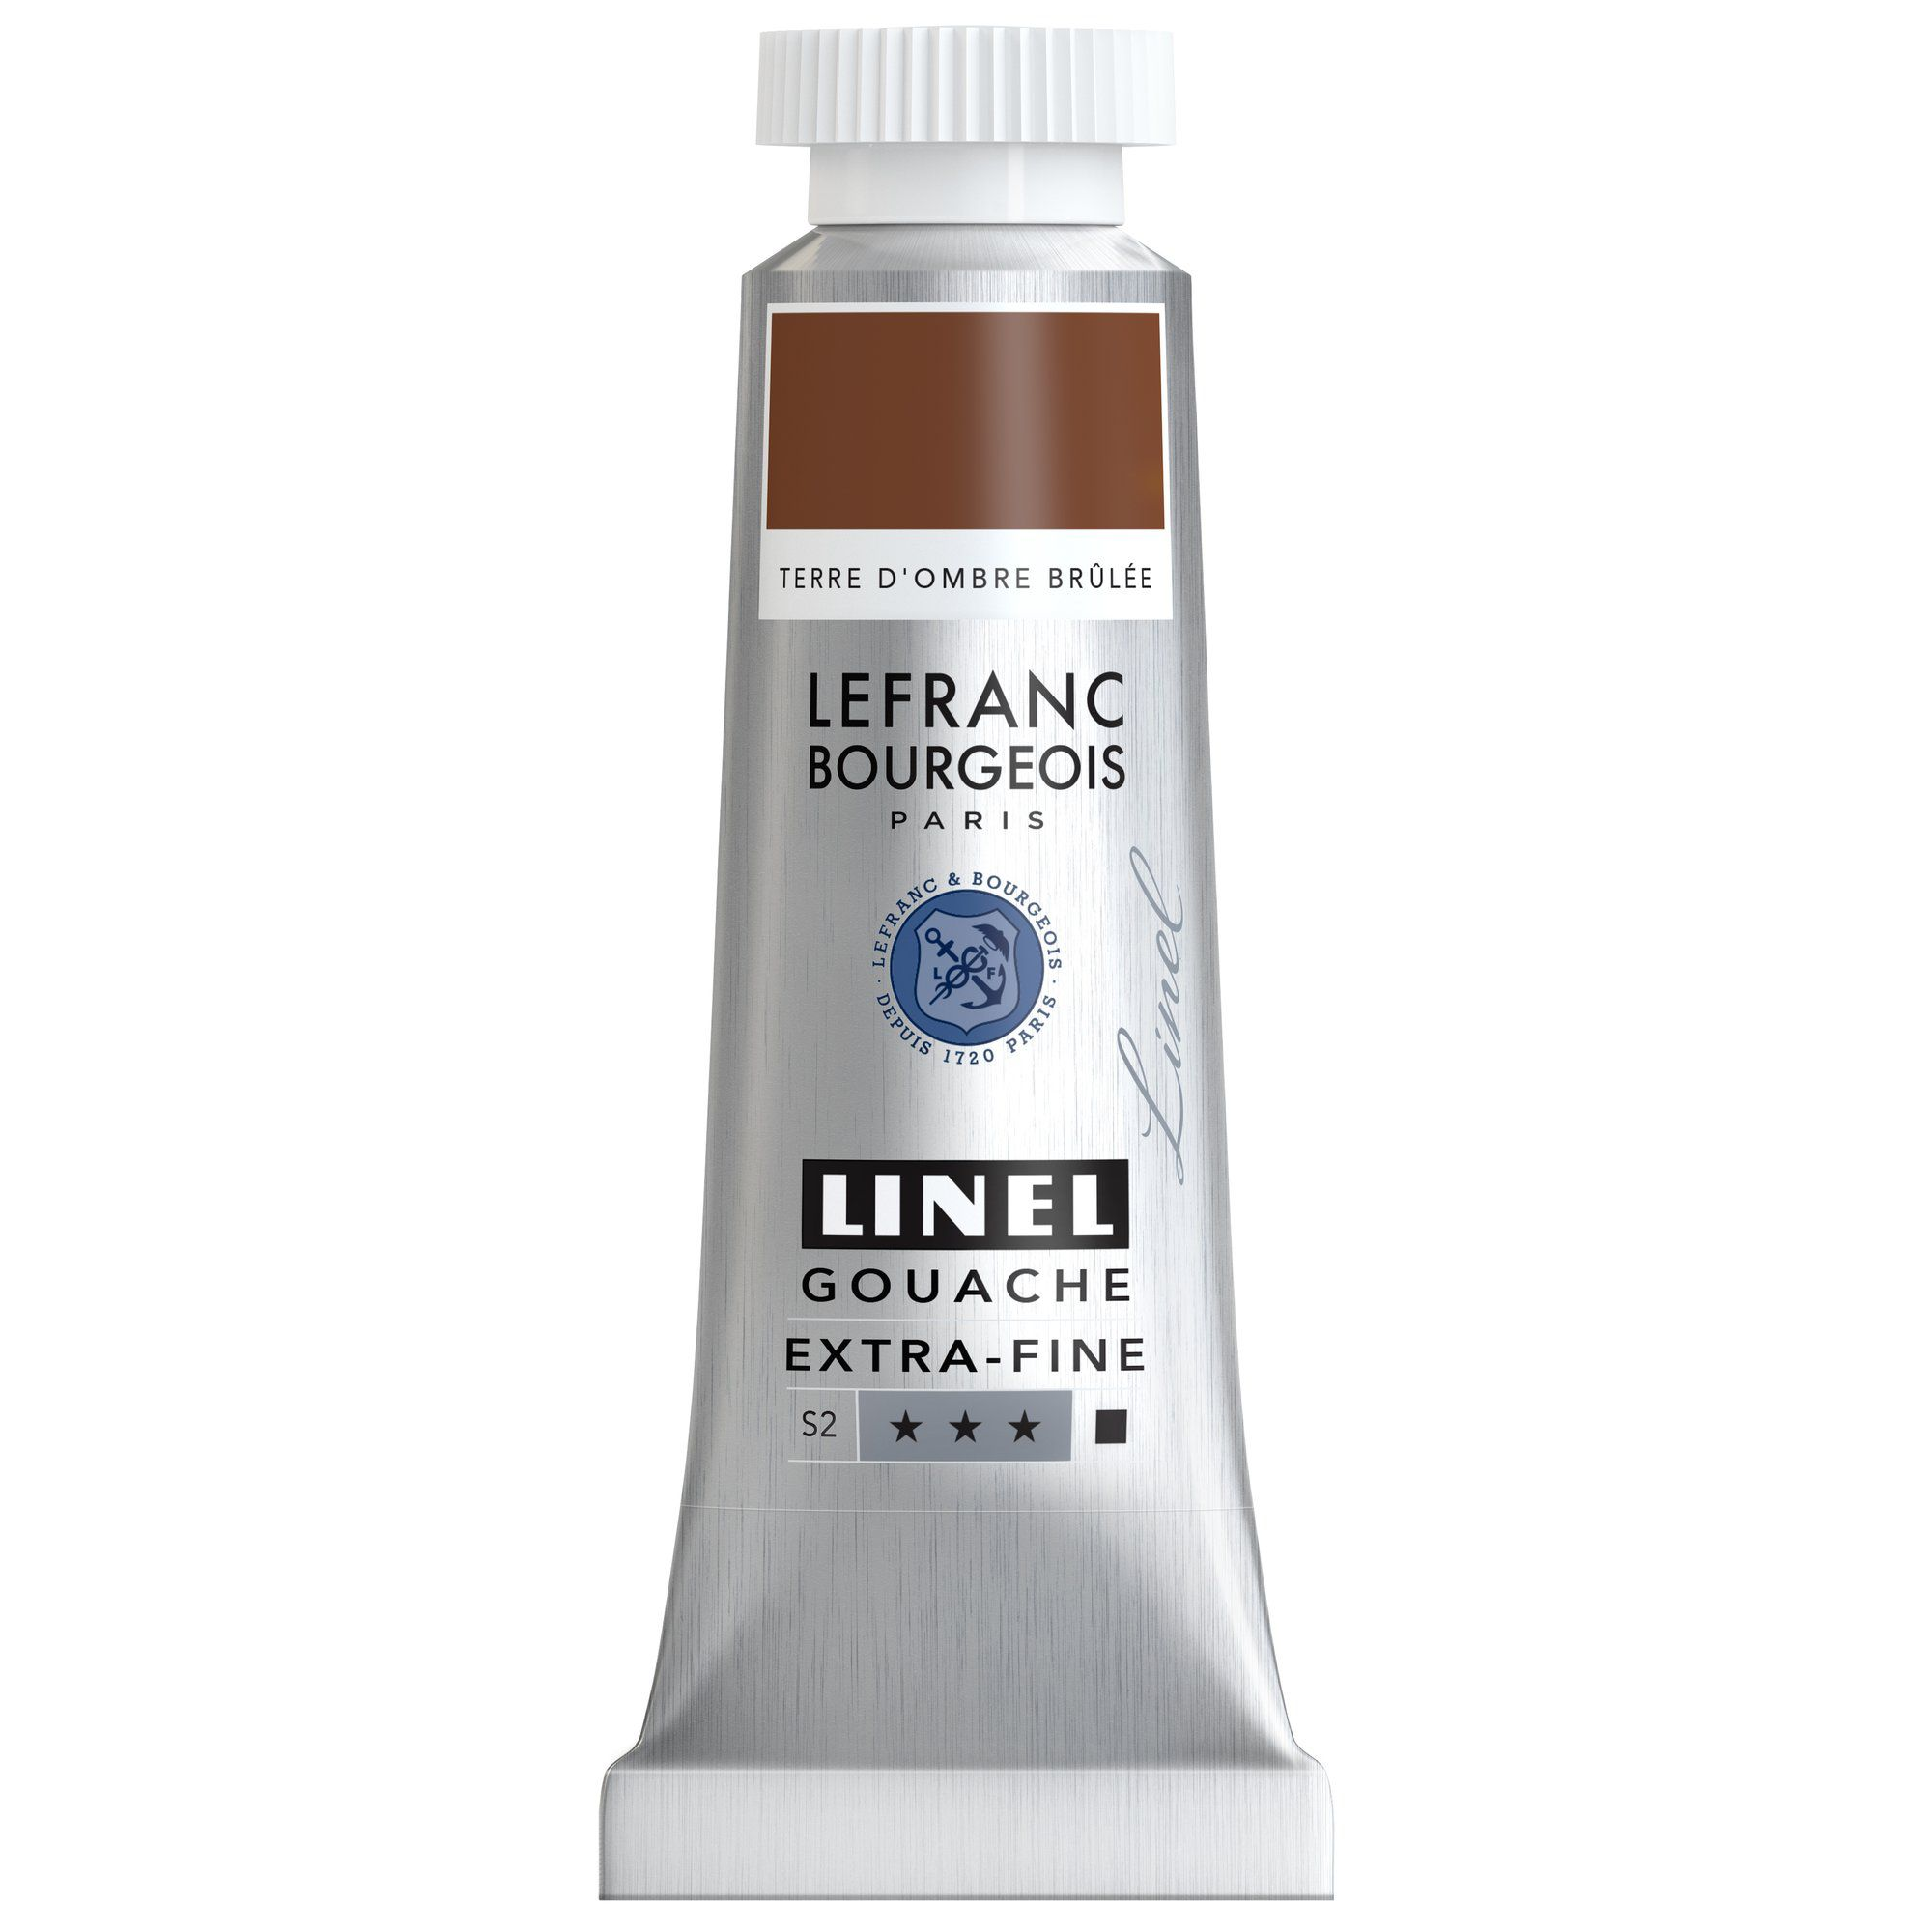 GOUACHE EXTRA-FINE LINEL 14ML TERRE D\'OMBRE BRULEE